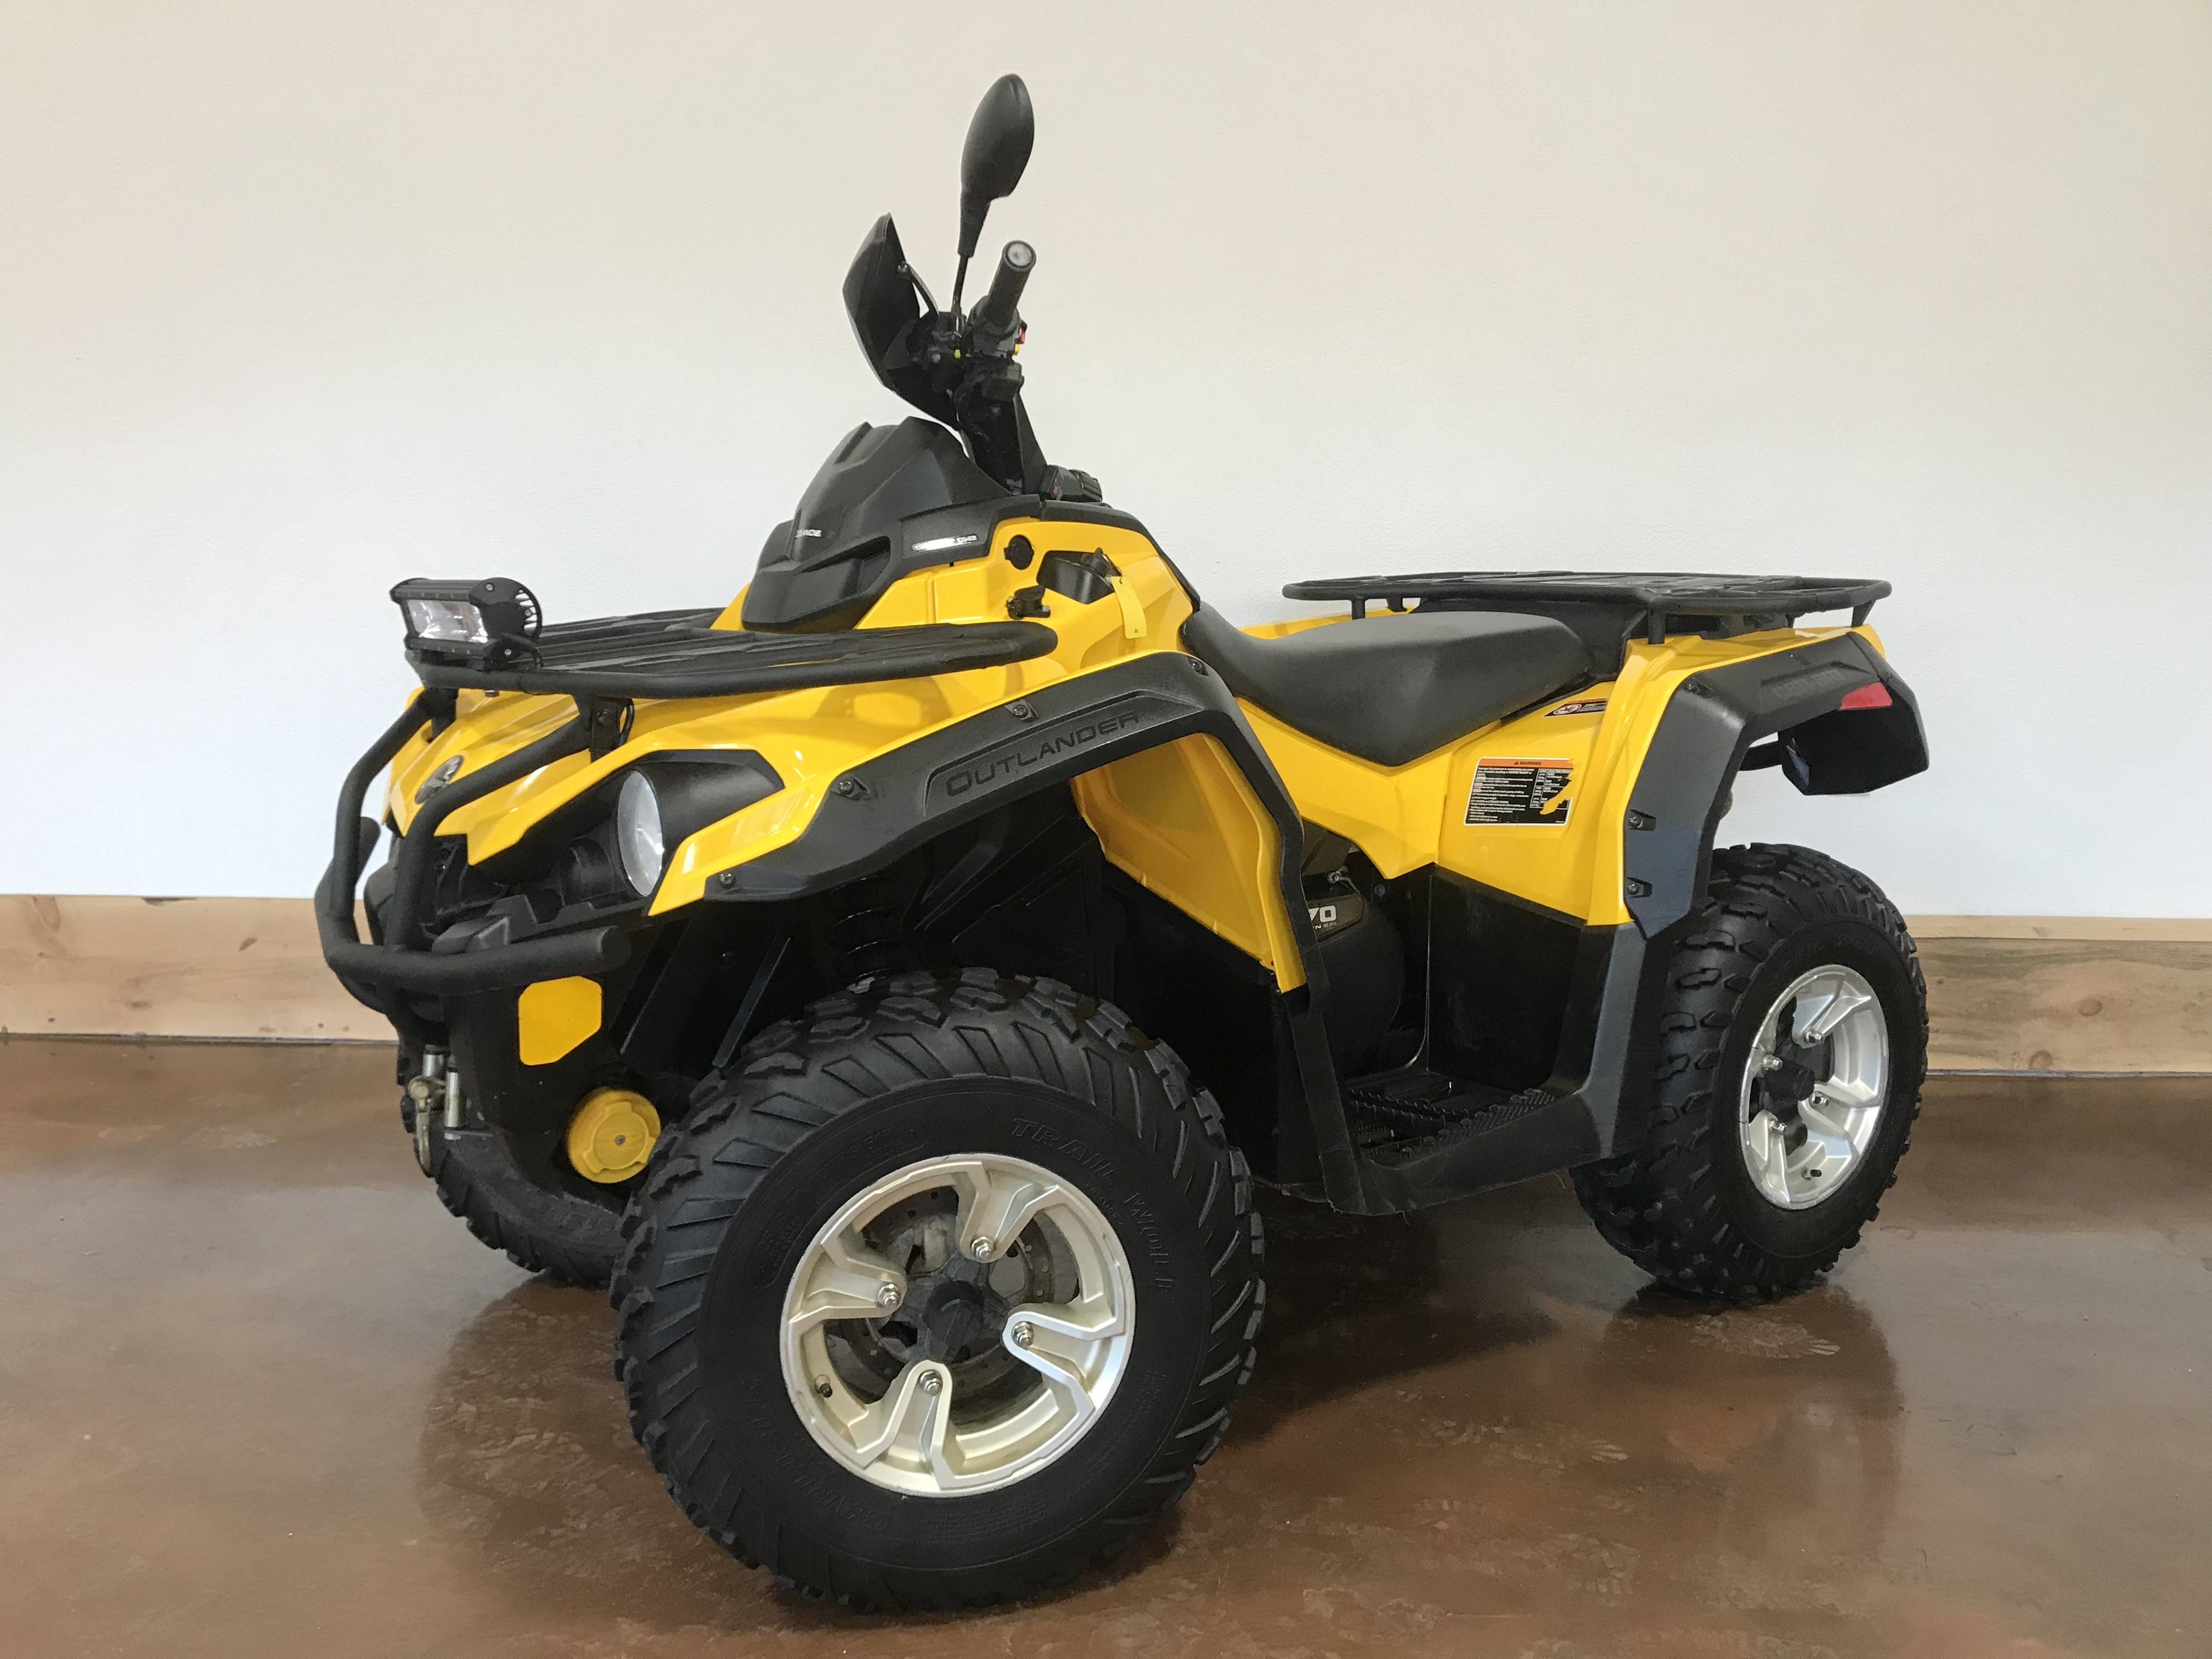 2016 Can-Am Outlander 570 DPS 79623